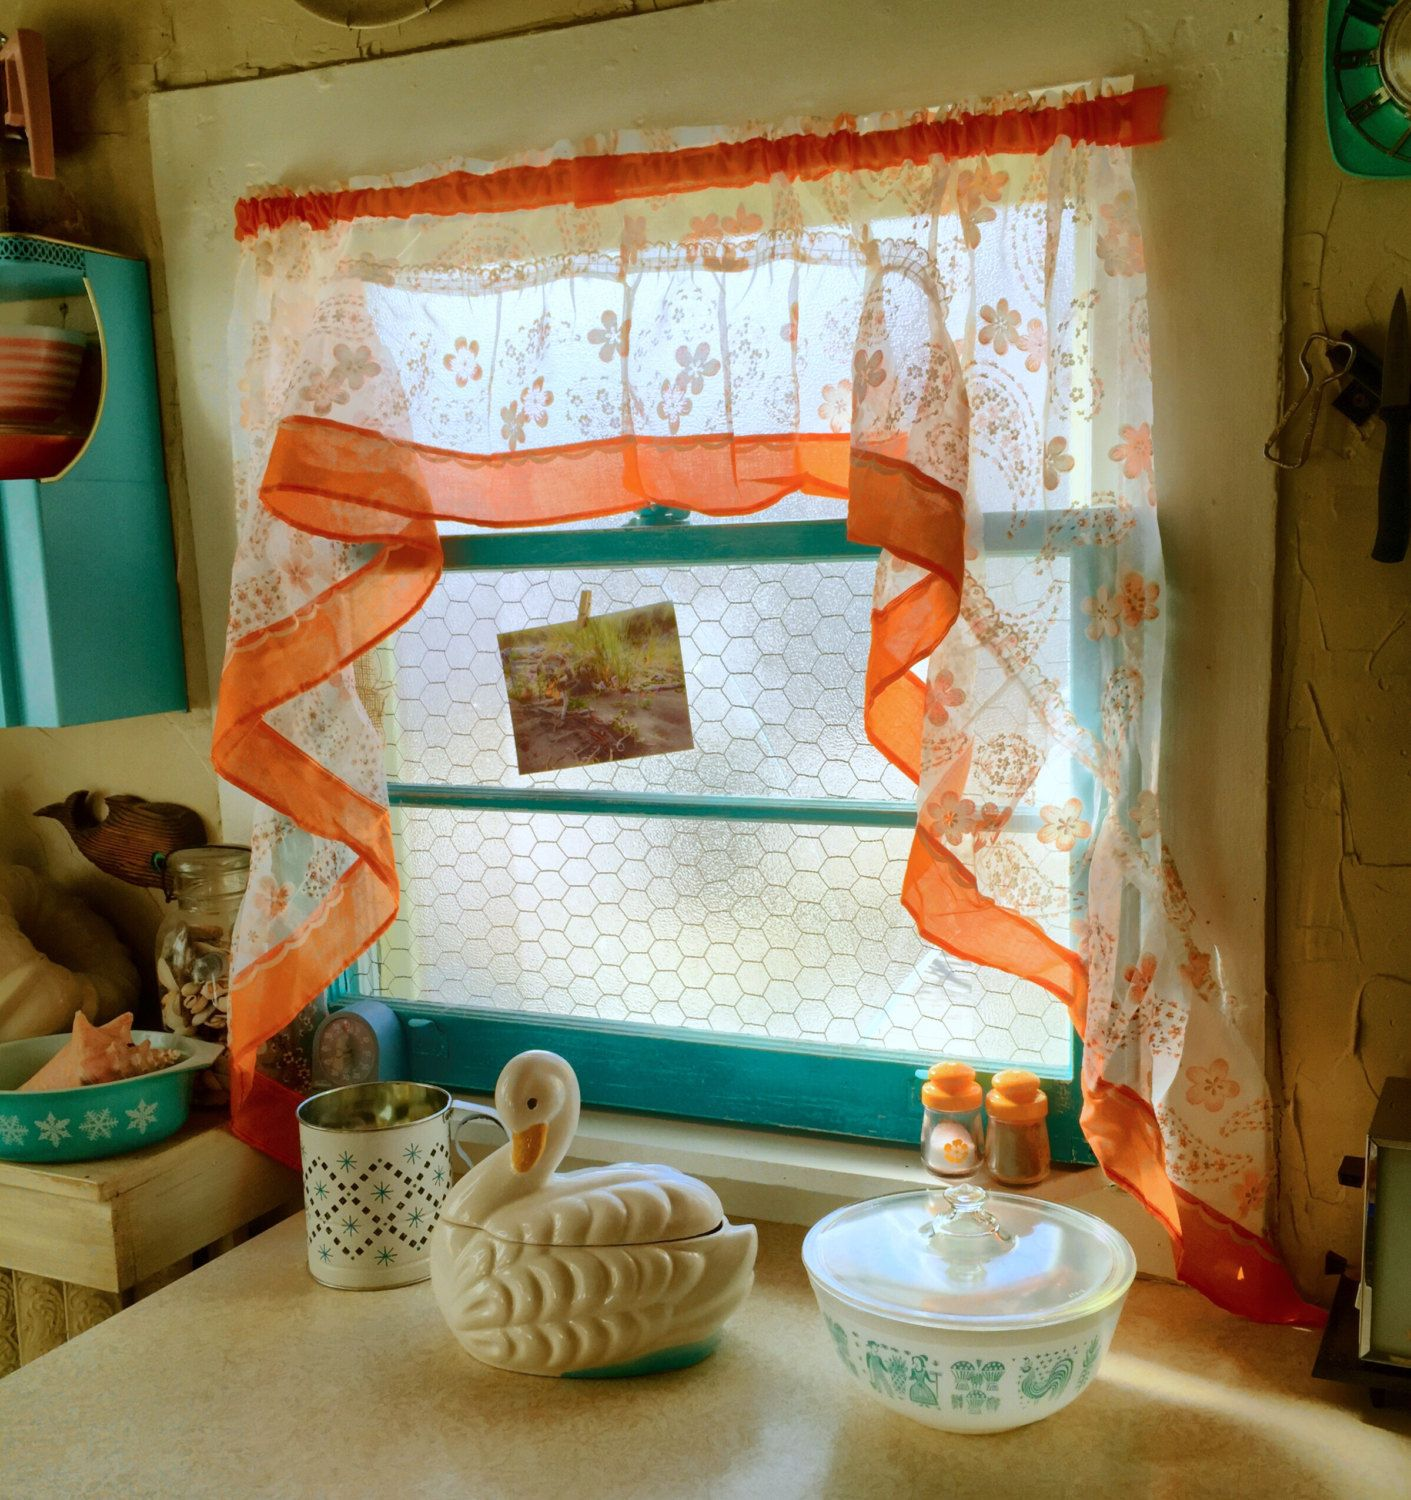 Retro camper curtains - Lovely Vintage Sheer Panel Valence Curtain Perfect For Your Retro Home Or Vintage Camper Sheer Material With Solid Orange Borders And A